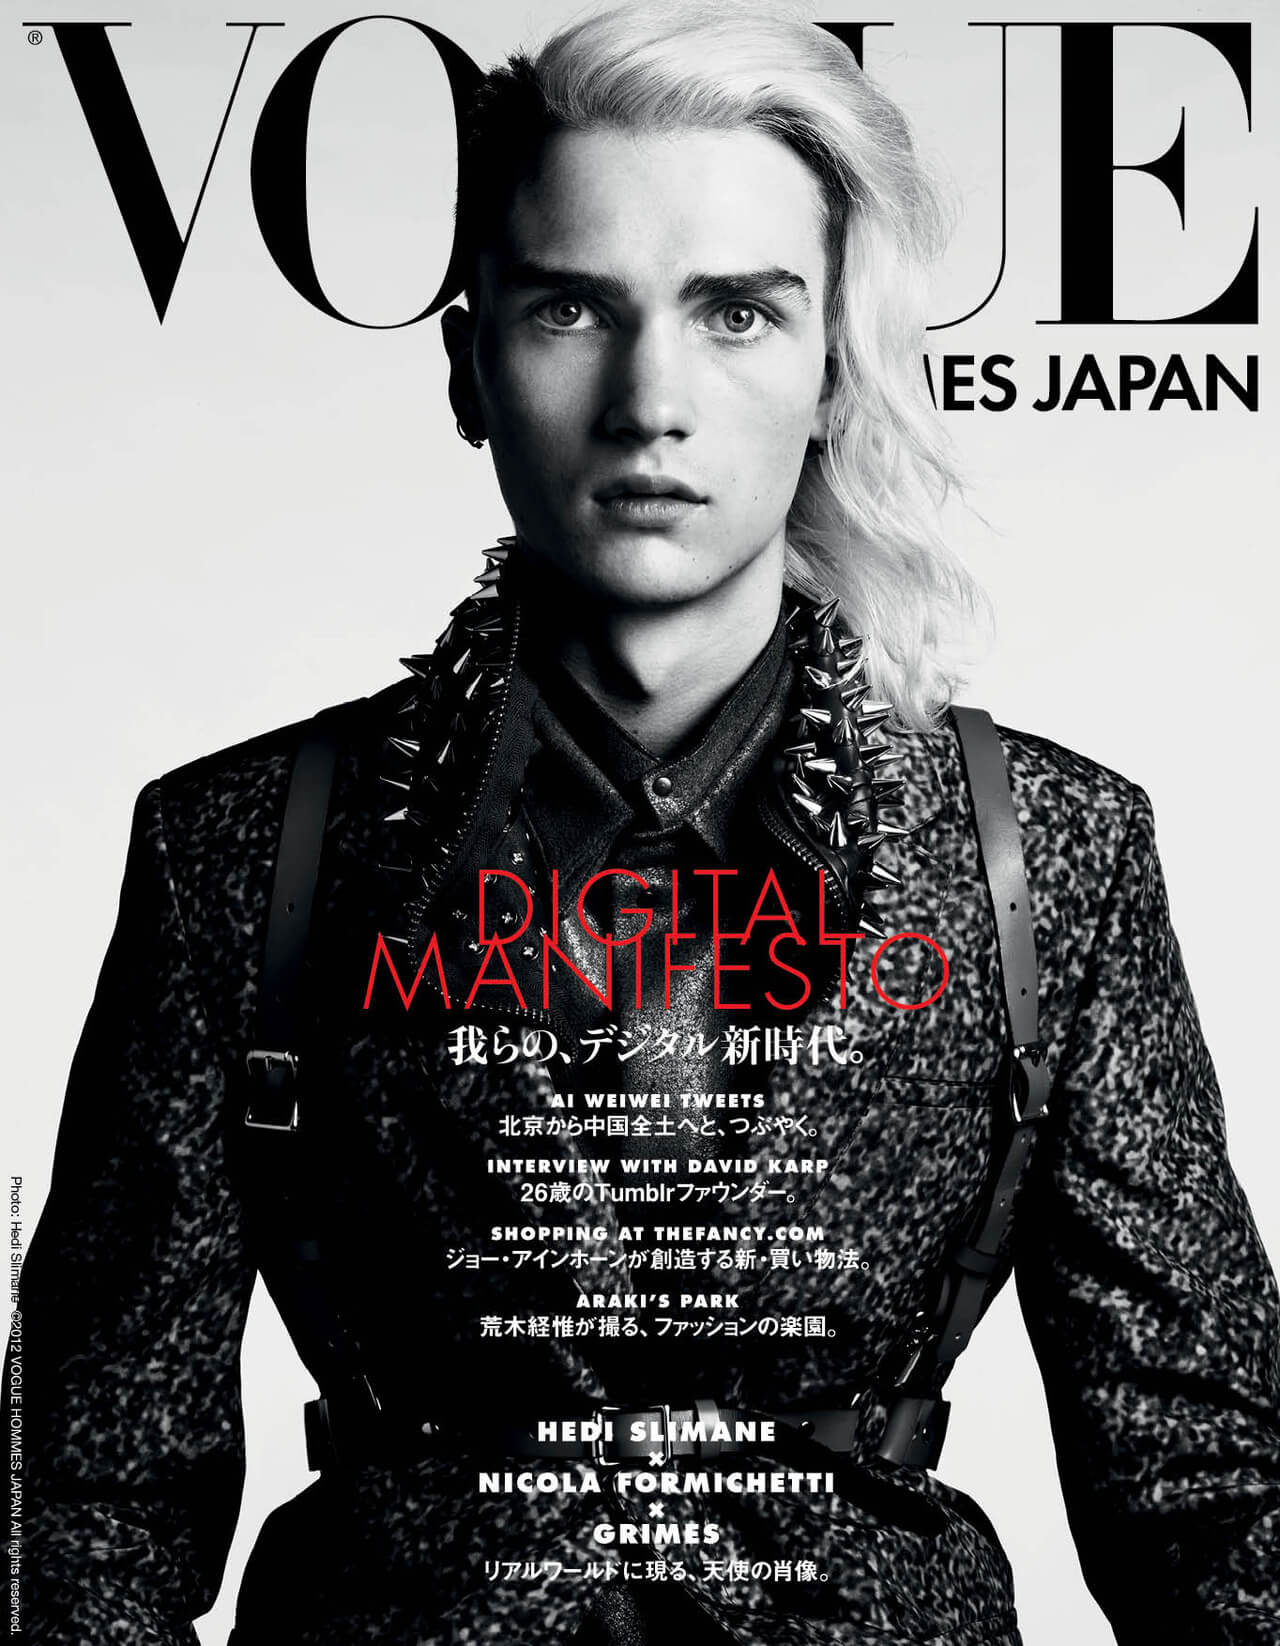 Vogue Hommes Japan Cover for (Fall/Winter 2012)